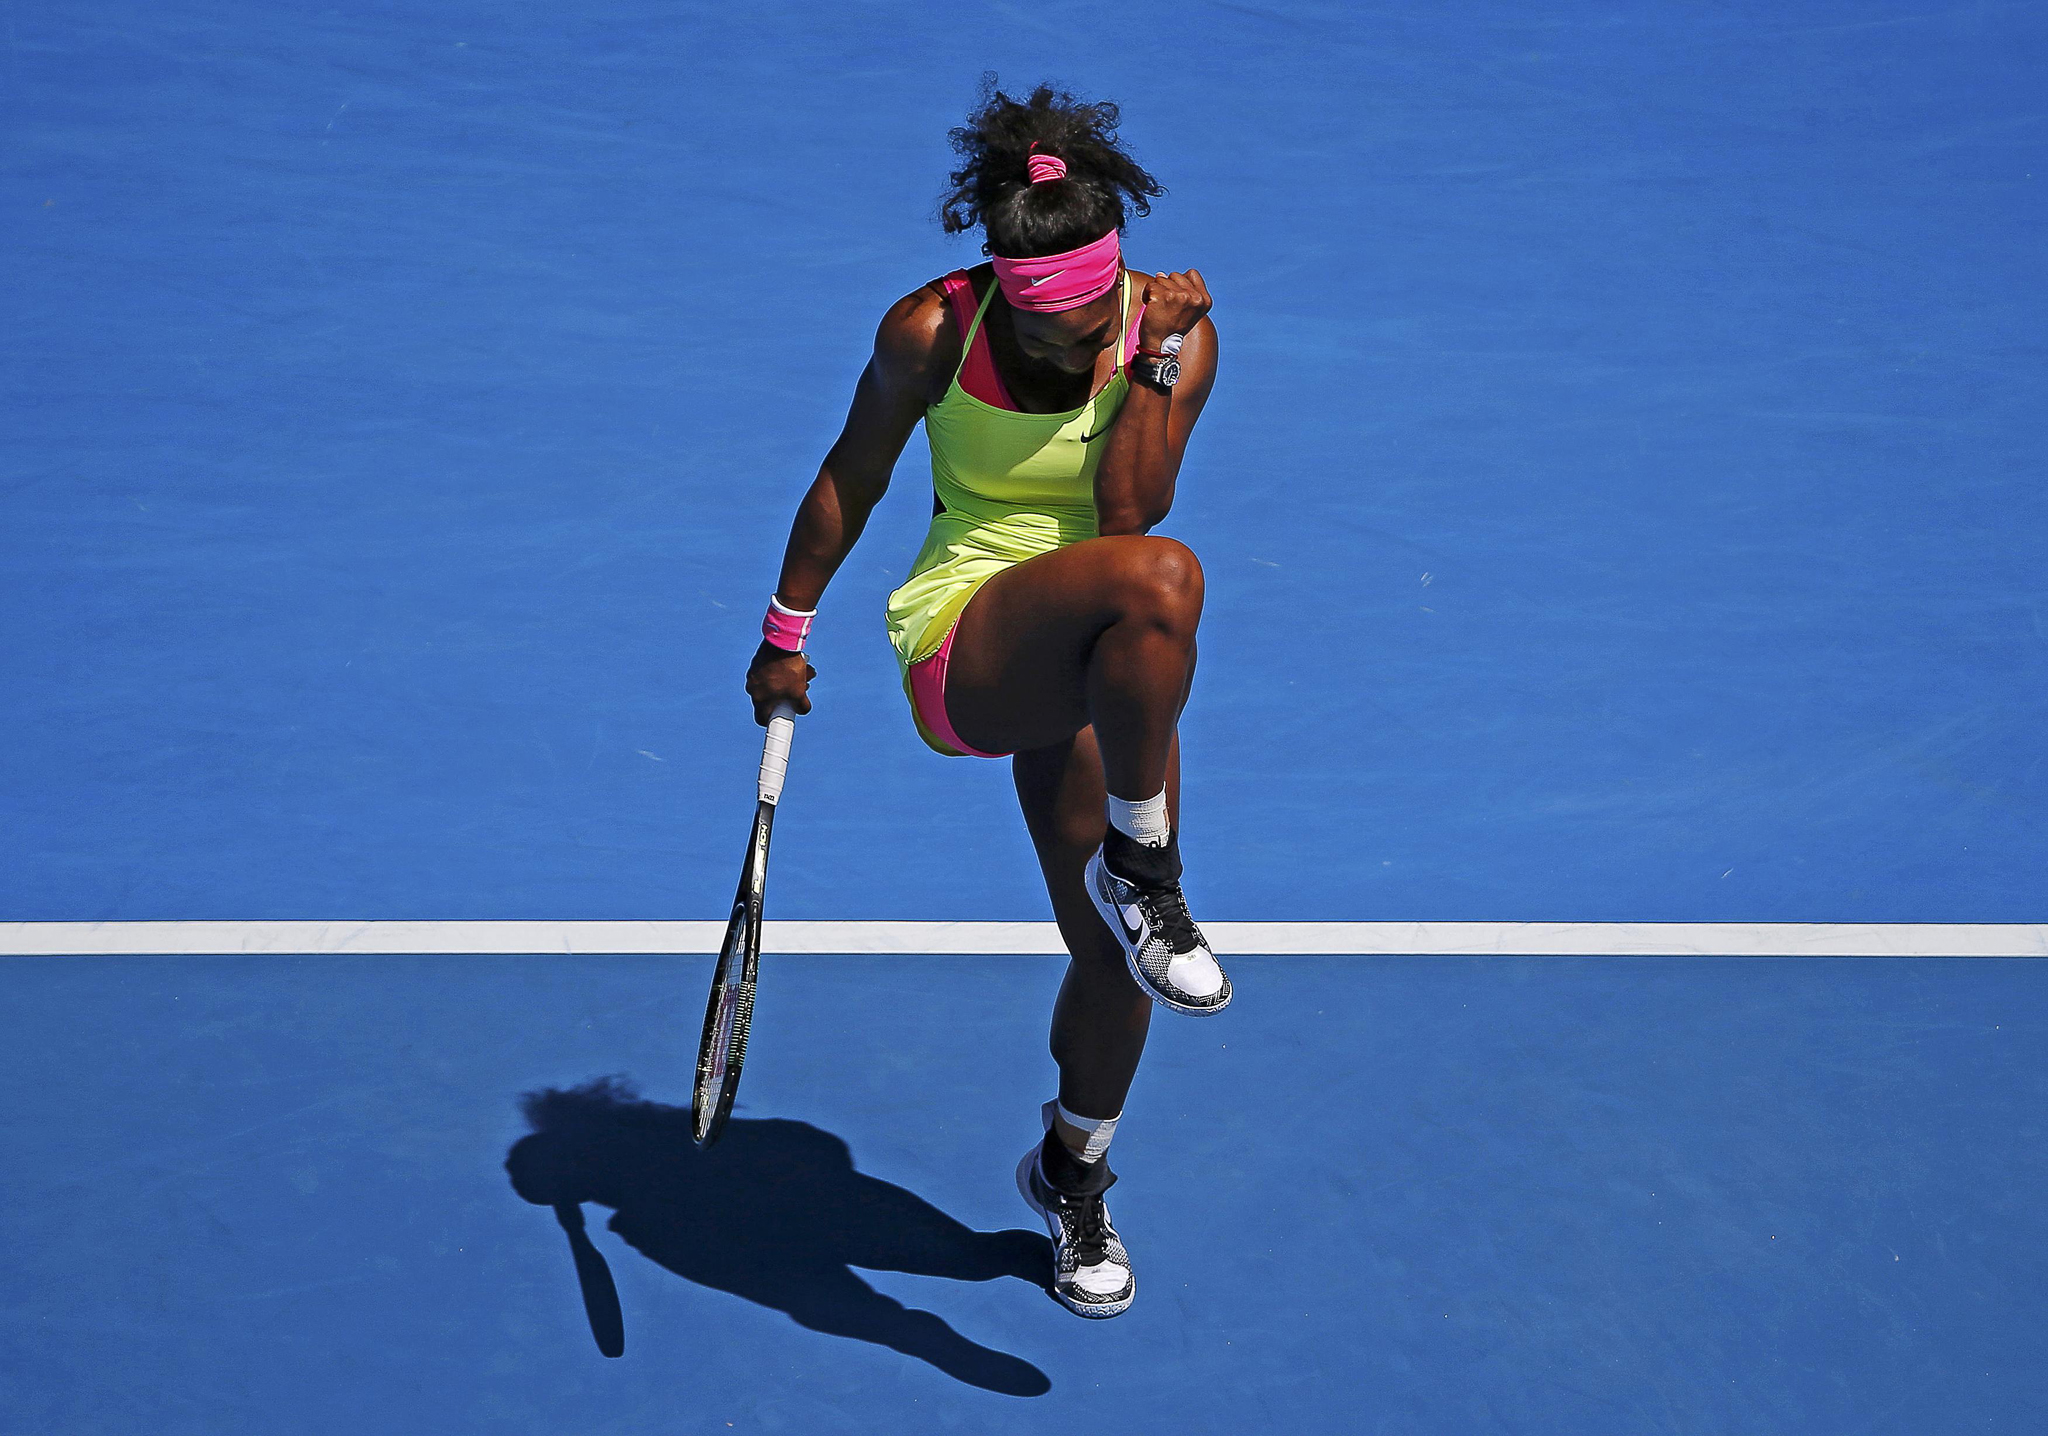 Serena of the U.S. celebrates defeating Cibulkova of Slovakia to win their women's singles quarter-final match at the Australian Open 2015 tennis tournament in Melbourne...Serena Williams of the U.S. celebrates defeating Dominika Cibulkova of Slovakia to win their women's singles quarter-final match at the Australian Open 2015 tennis tournament in Melbourne January 28, 2015.     REUTERS/Carlos Barria (AUSTRALIA  - Tags: SPORT TENNIS)